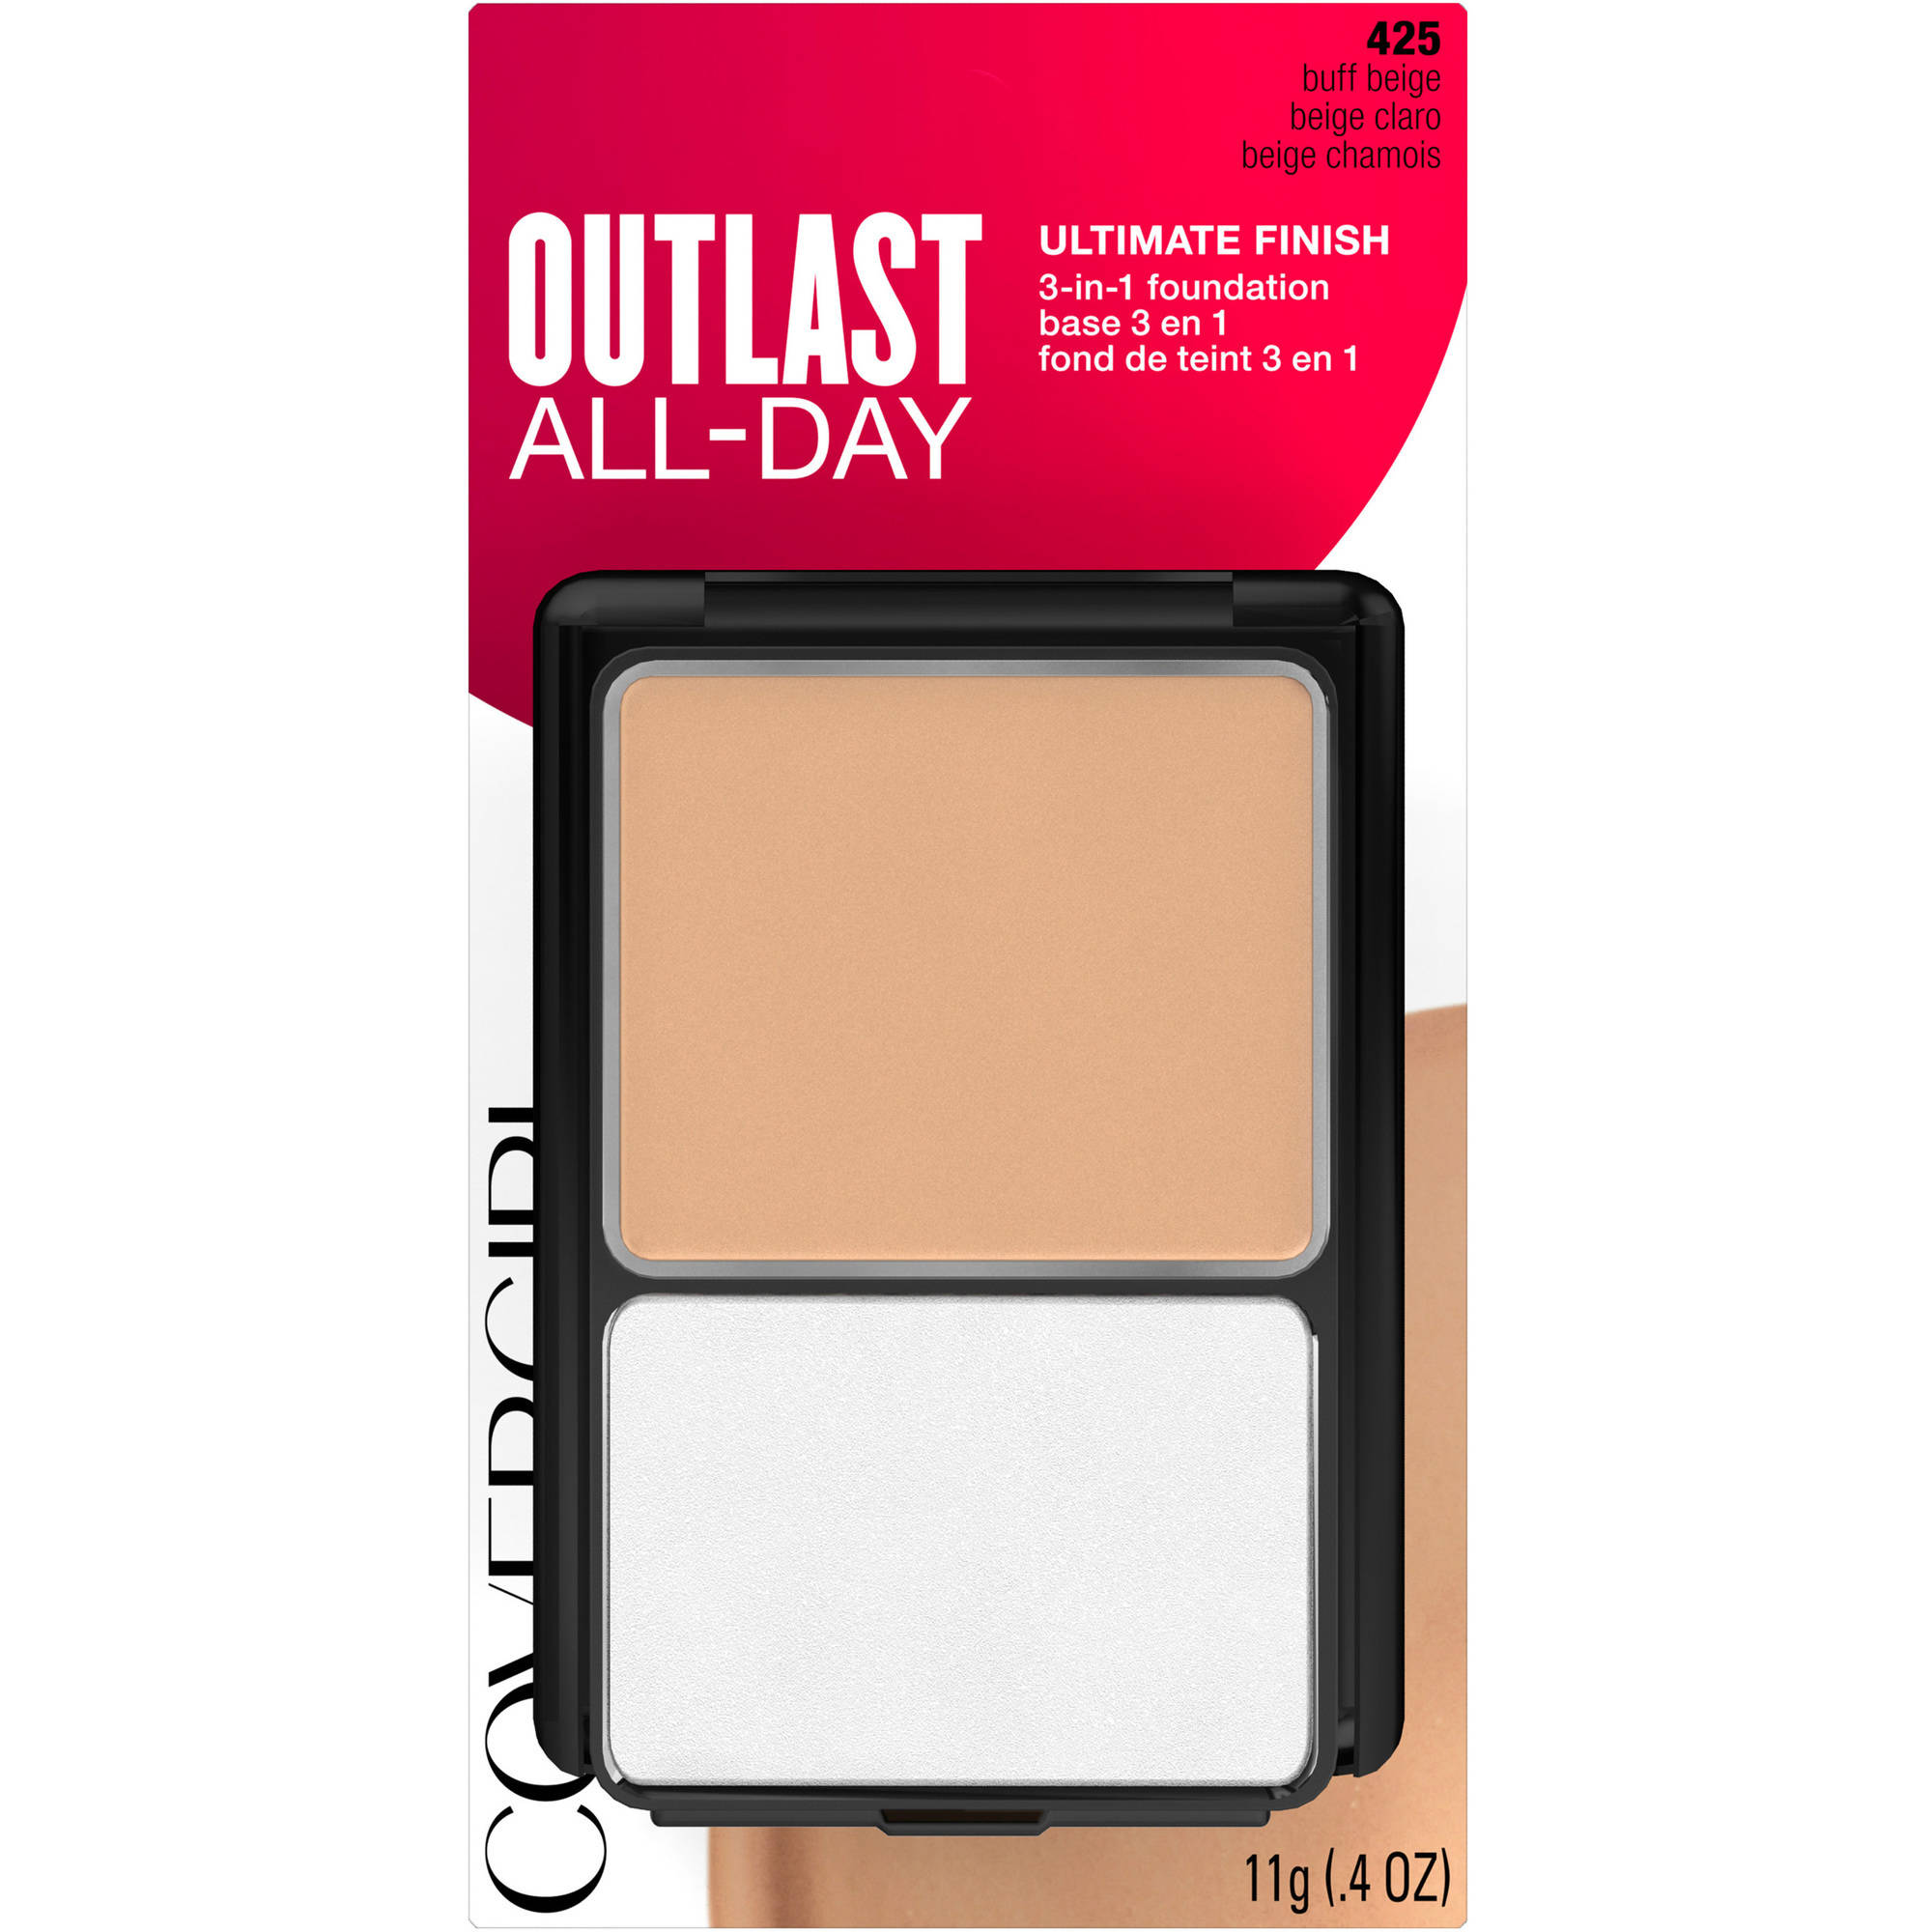 COVERGIRL Outlast All-Day Ultimate Finish 3-in-1 Foundation, 425 Buff Beige, 0.4  oz